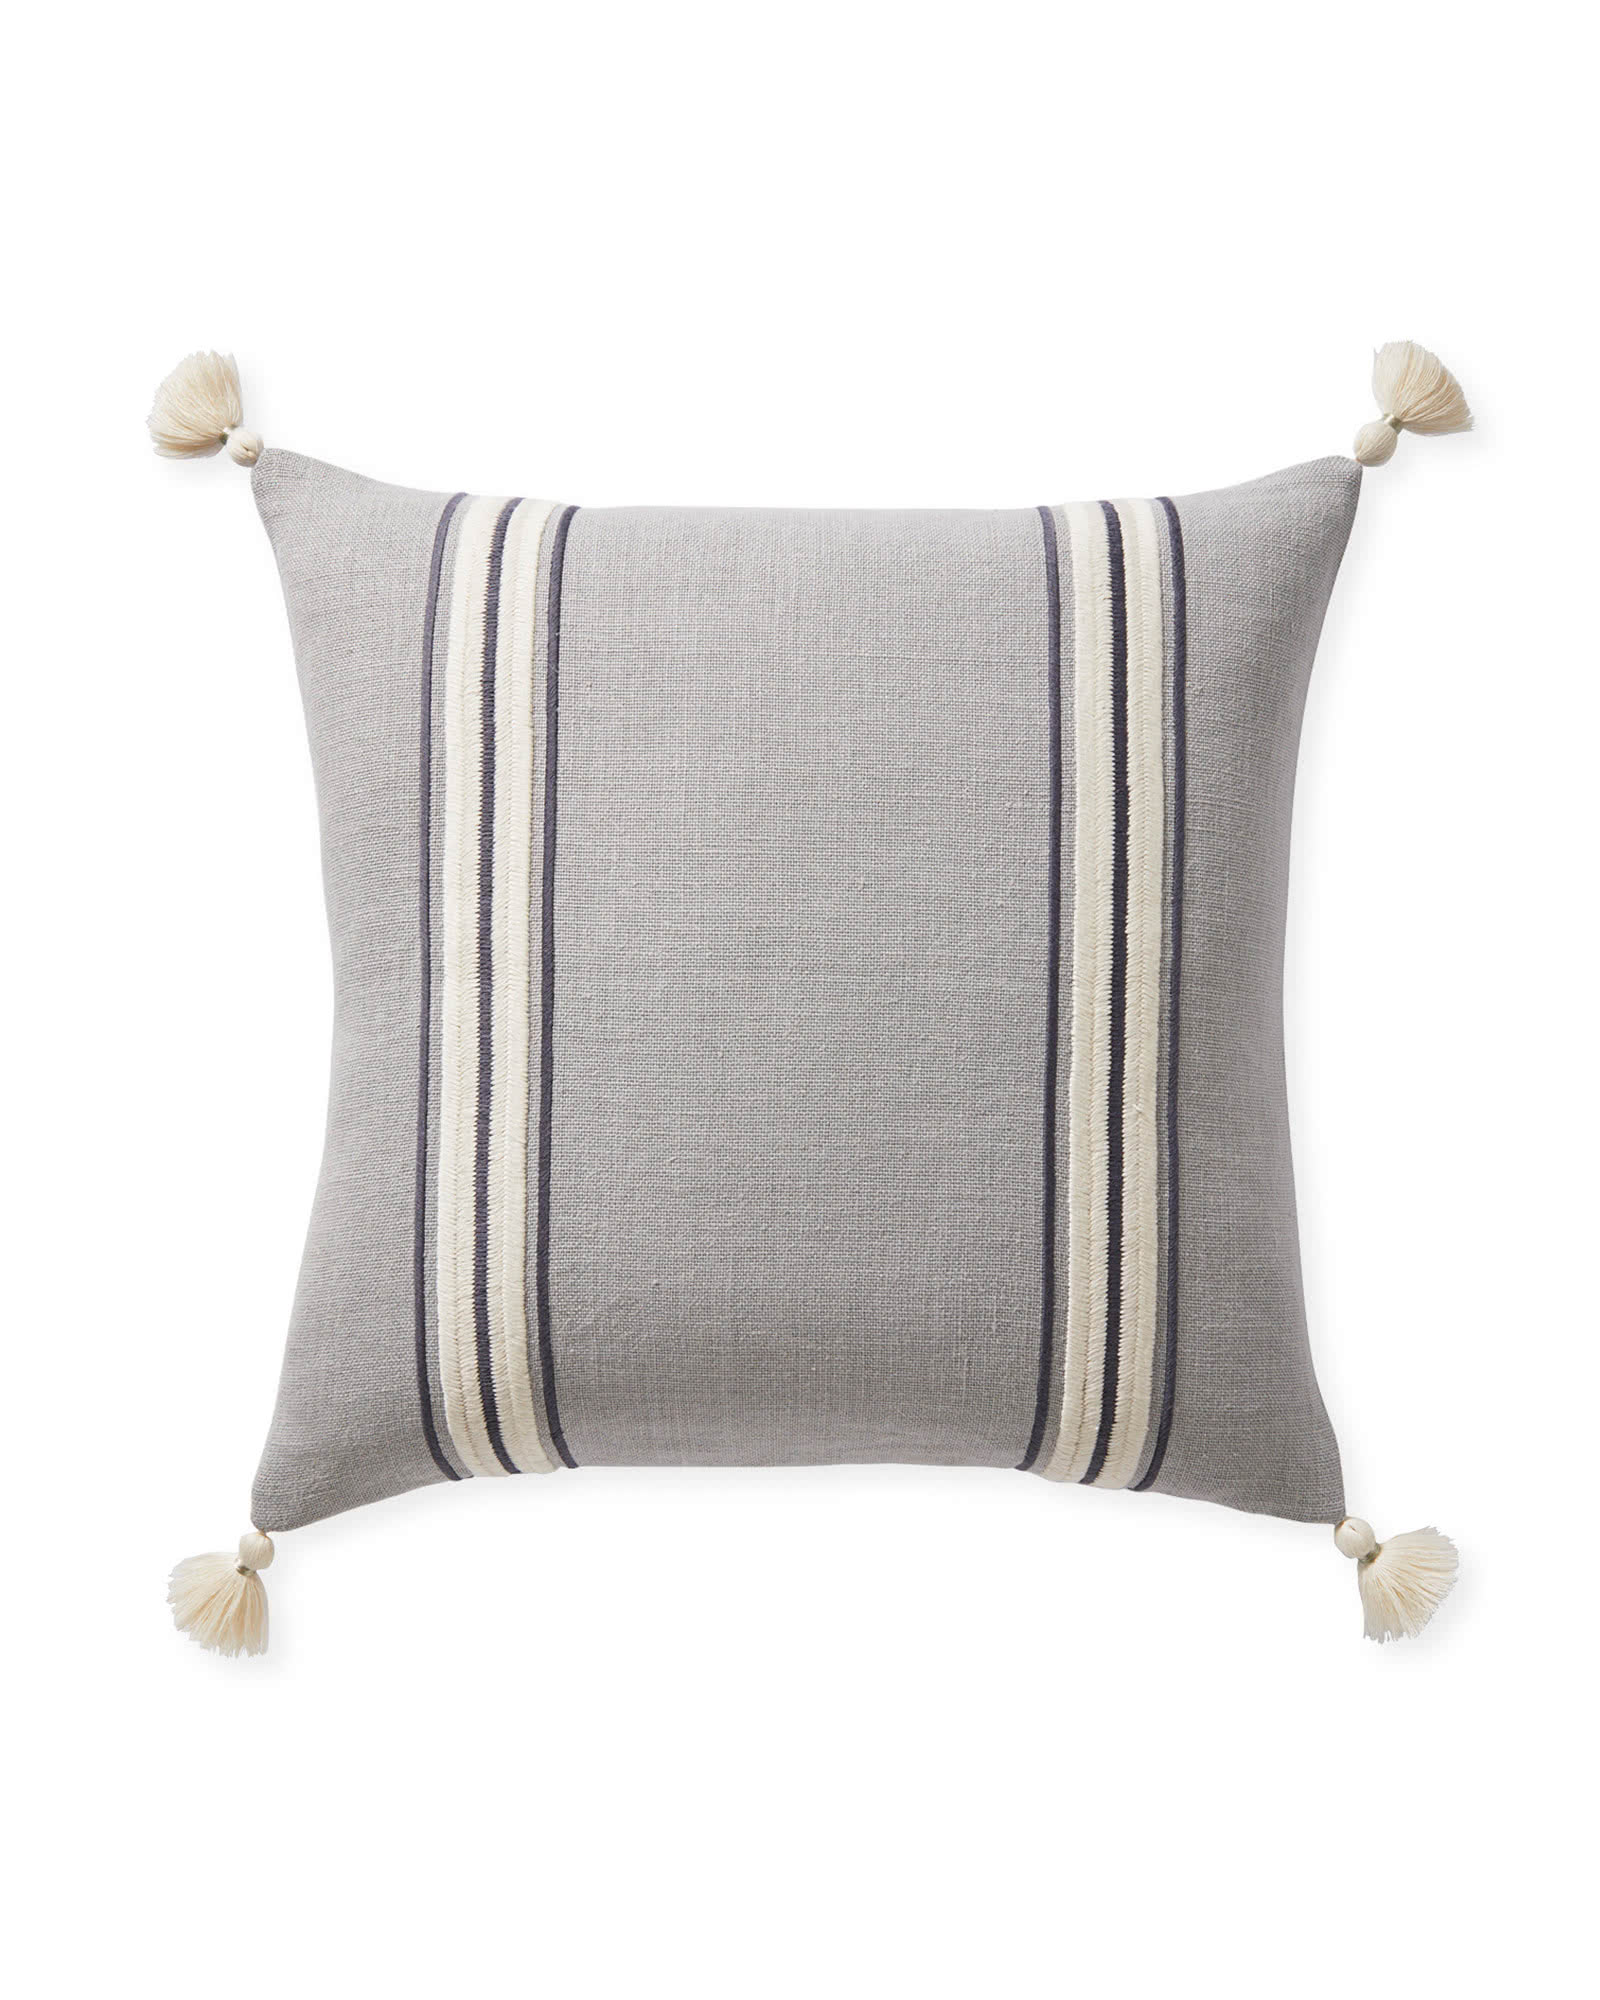 Addie Stripe Tassel Pillow Cover, Smoke